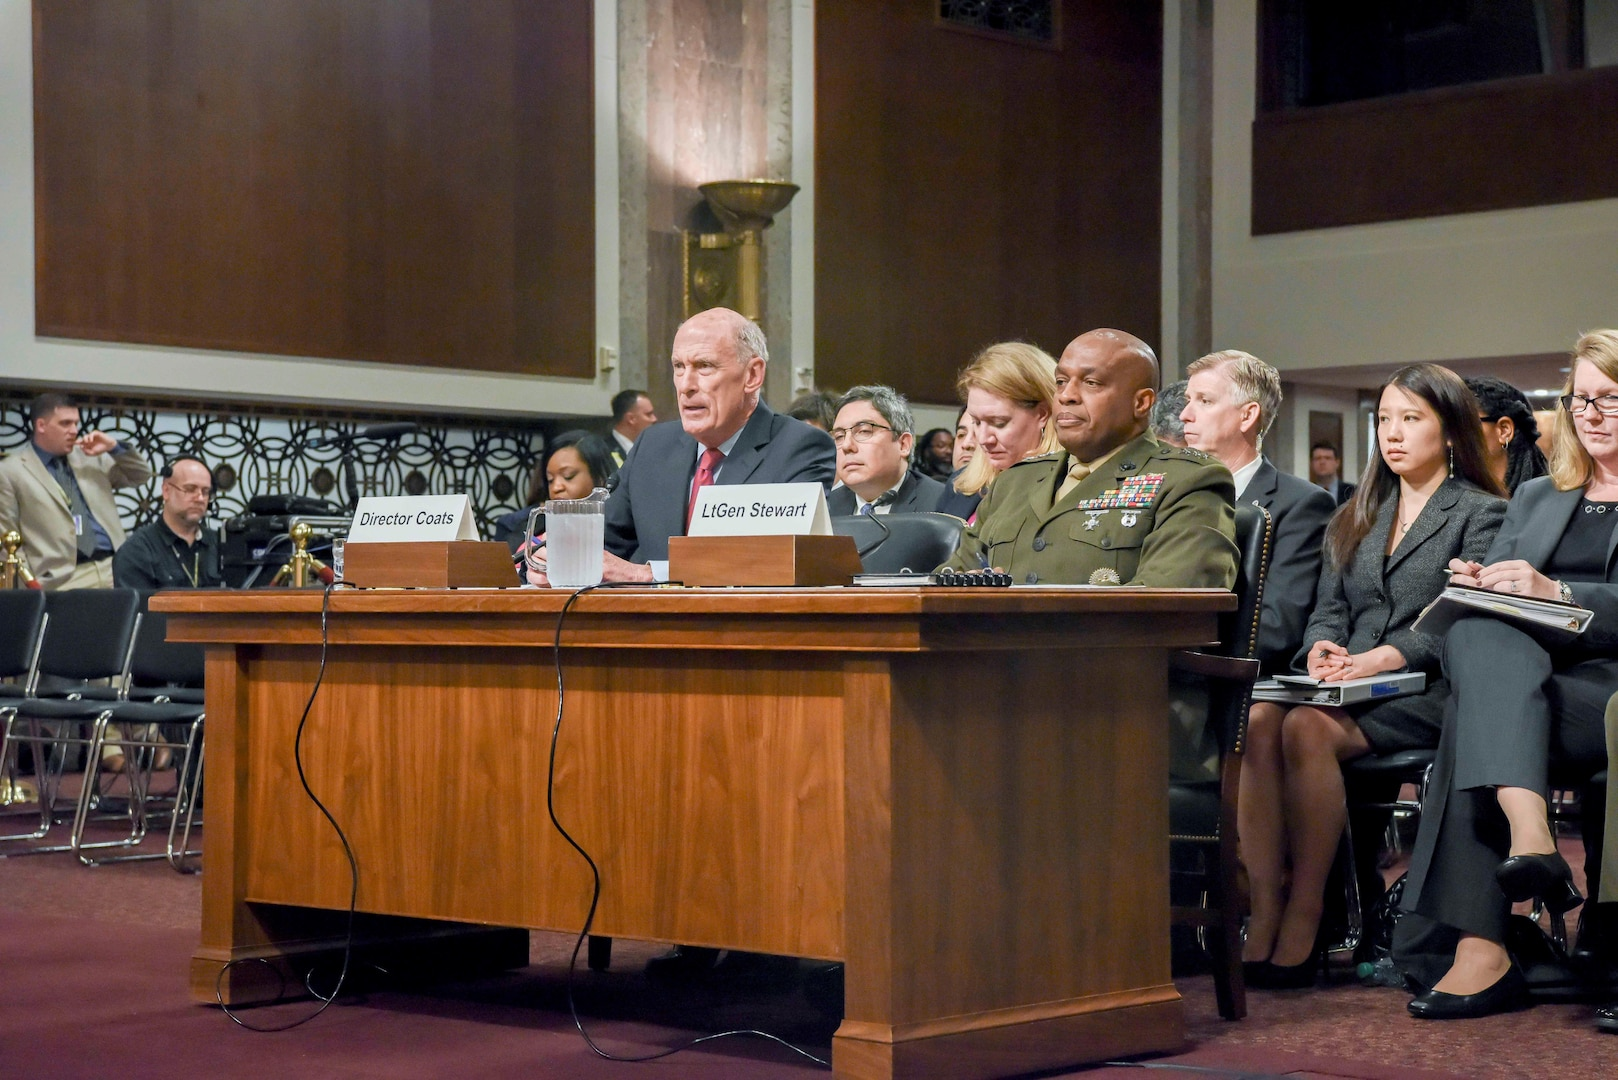 DIA Director LtGen Stewart Testifies Before the Senate Armed Services Committee May 23, 2017.